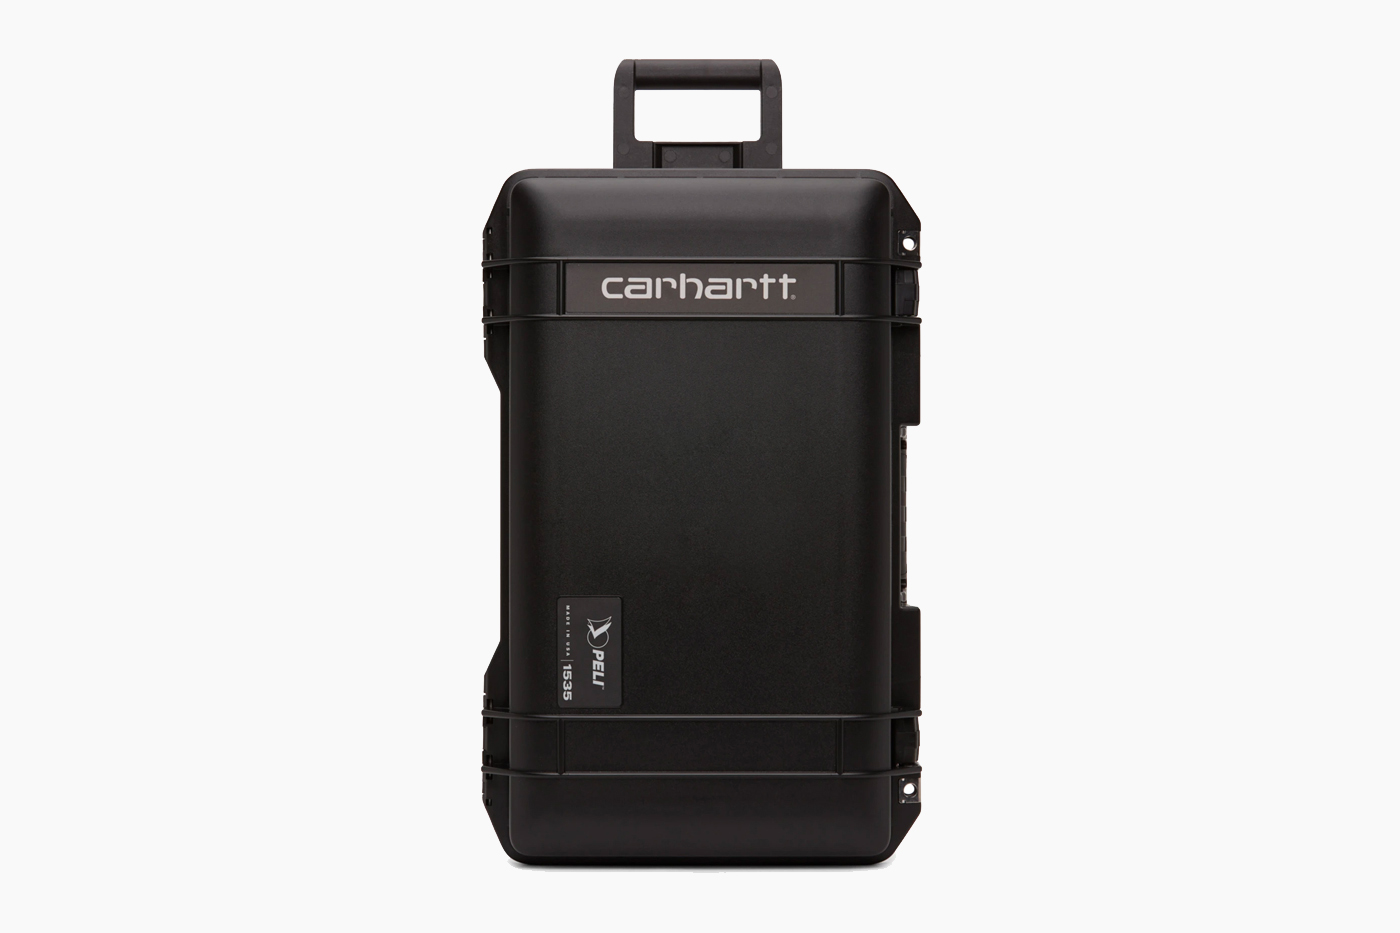 Carhartt WIP x Pelican 1535 Air Carry-On Case